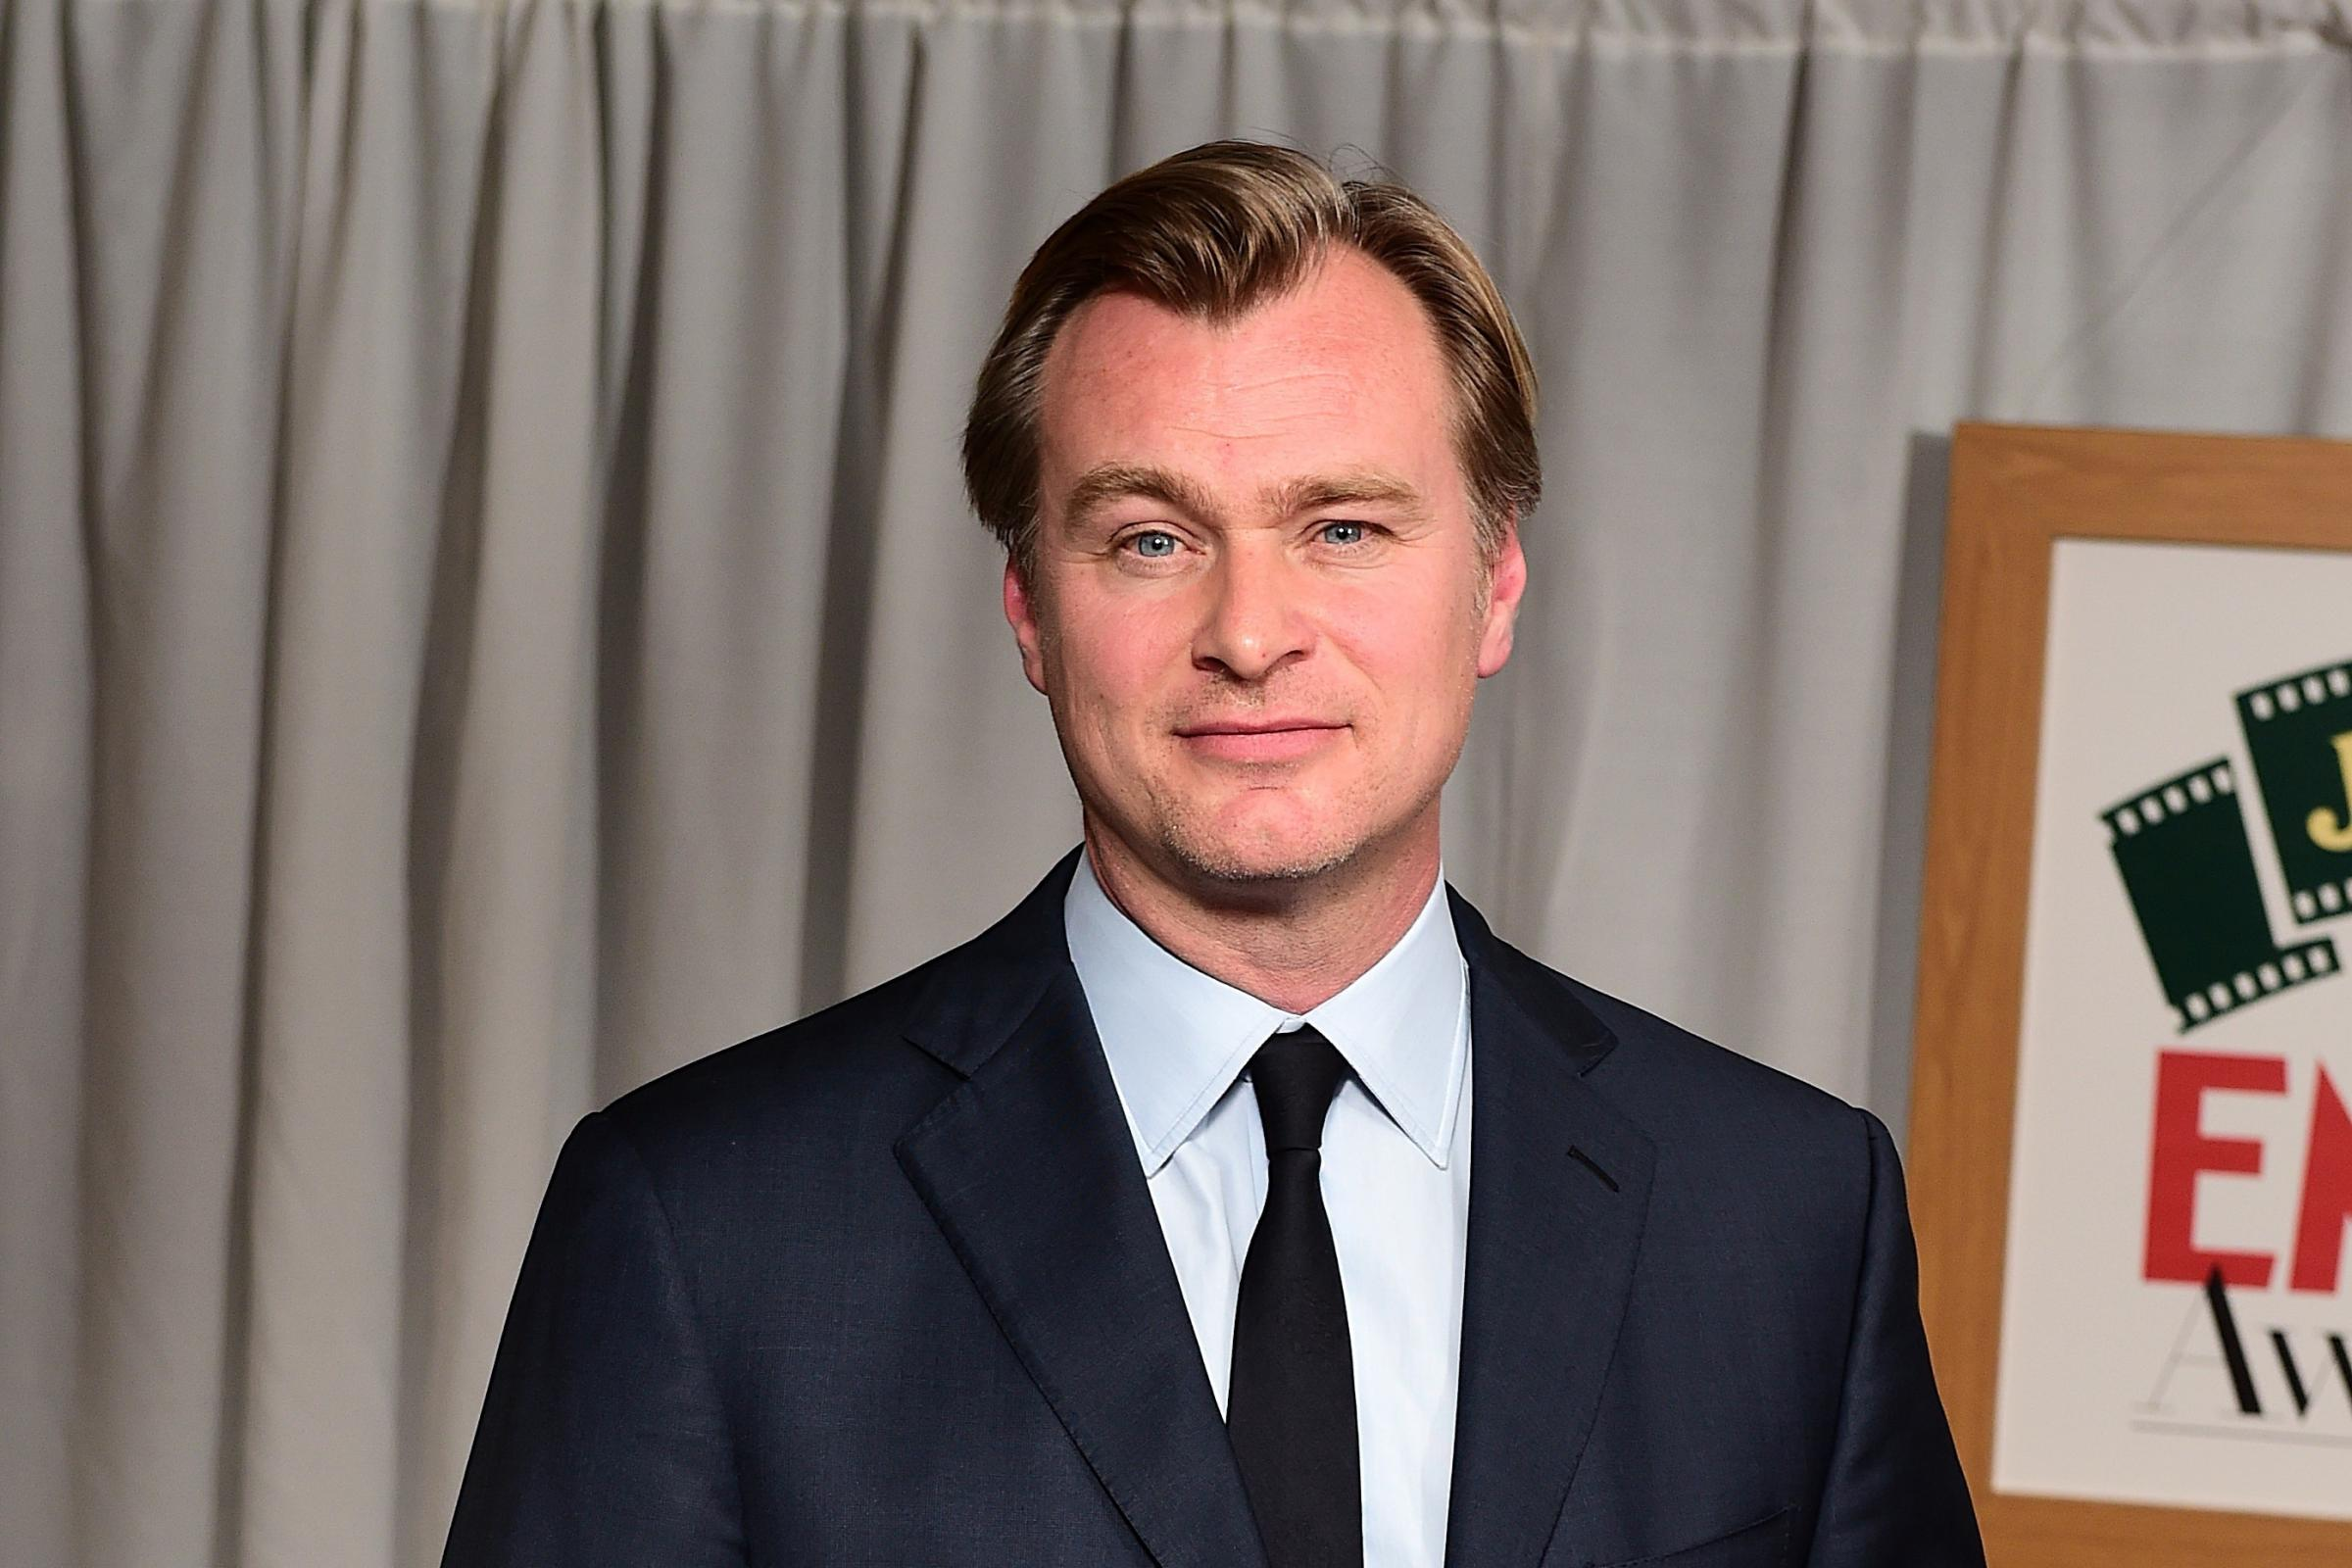 Christopher Nolan receives the Empire Inspiration Award during the Jameson Empire Film Awards 2015 held at Grosvenor House, on Park Lane, London